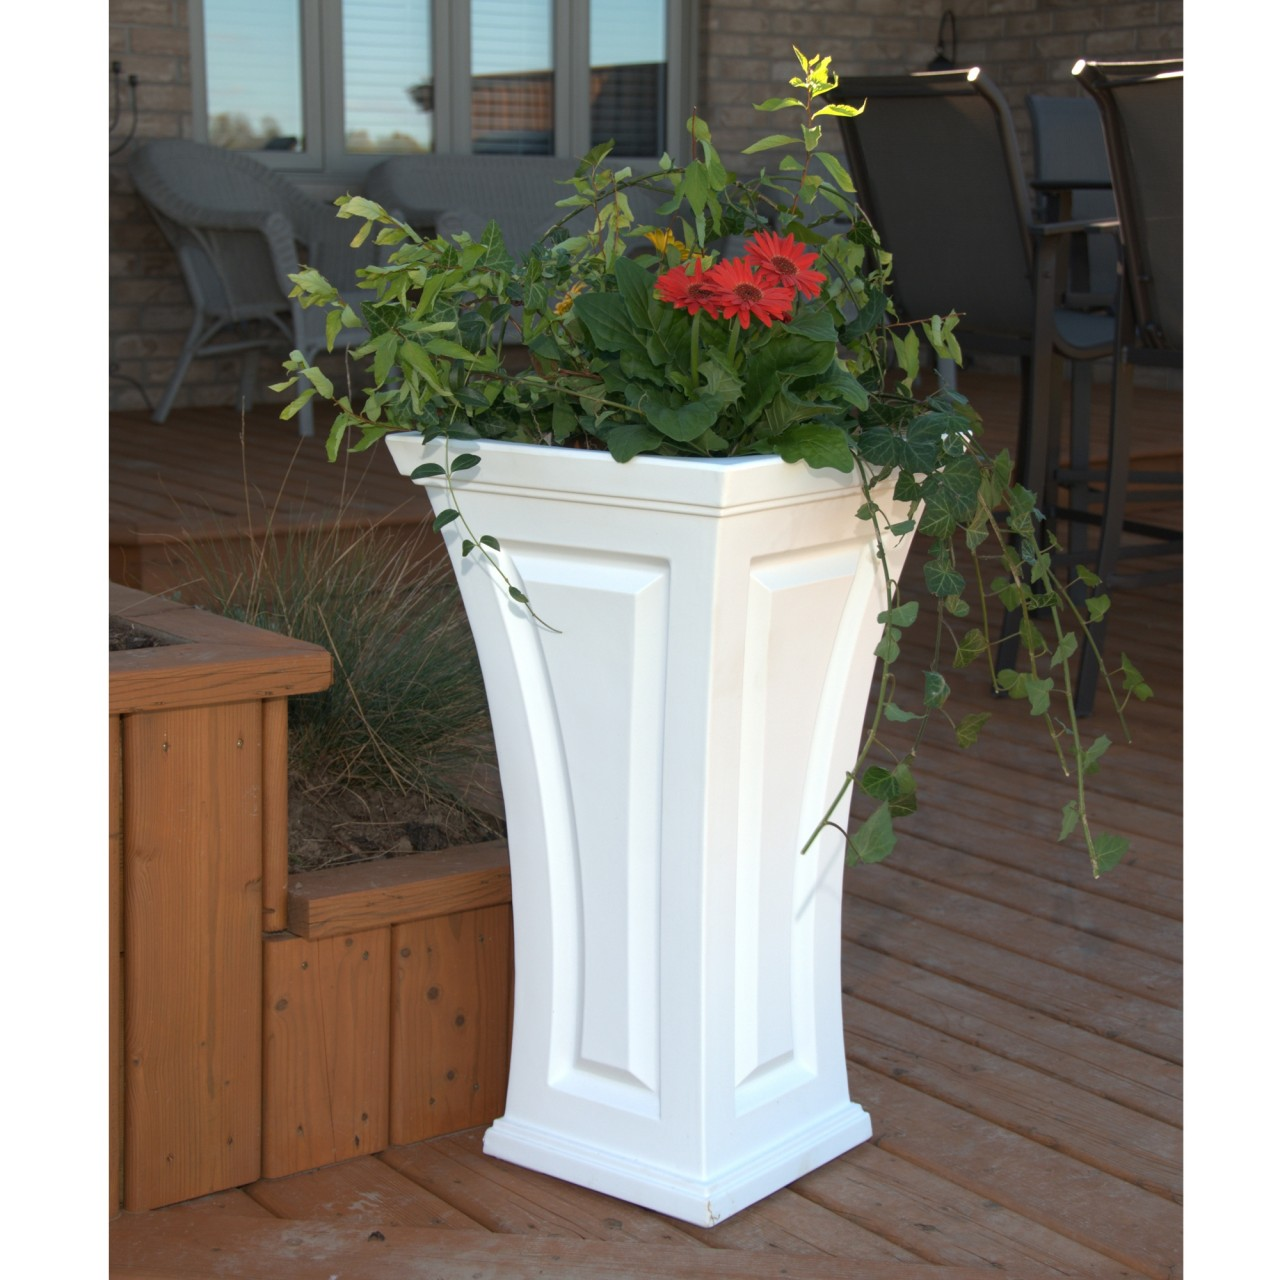 Planter Urns Tall Planter Pots Tall Planters Tall Square Planter Tall  Wooden Planter Tall Garden Planter Tall Zinc Planters Large Ceramic Pots  Tall Planter ... - Large Patio Planter Pots. Patio Plants For Shade Good Potted Plant